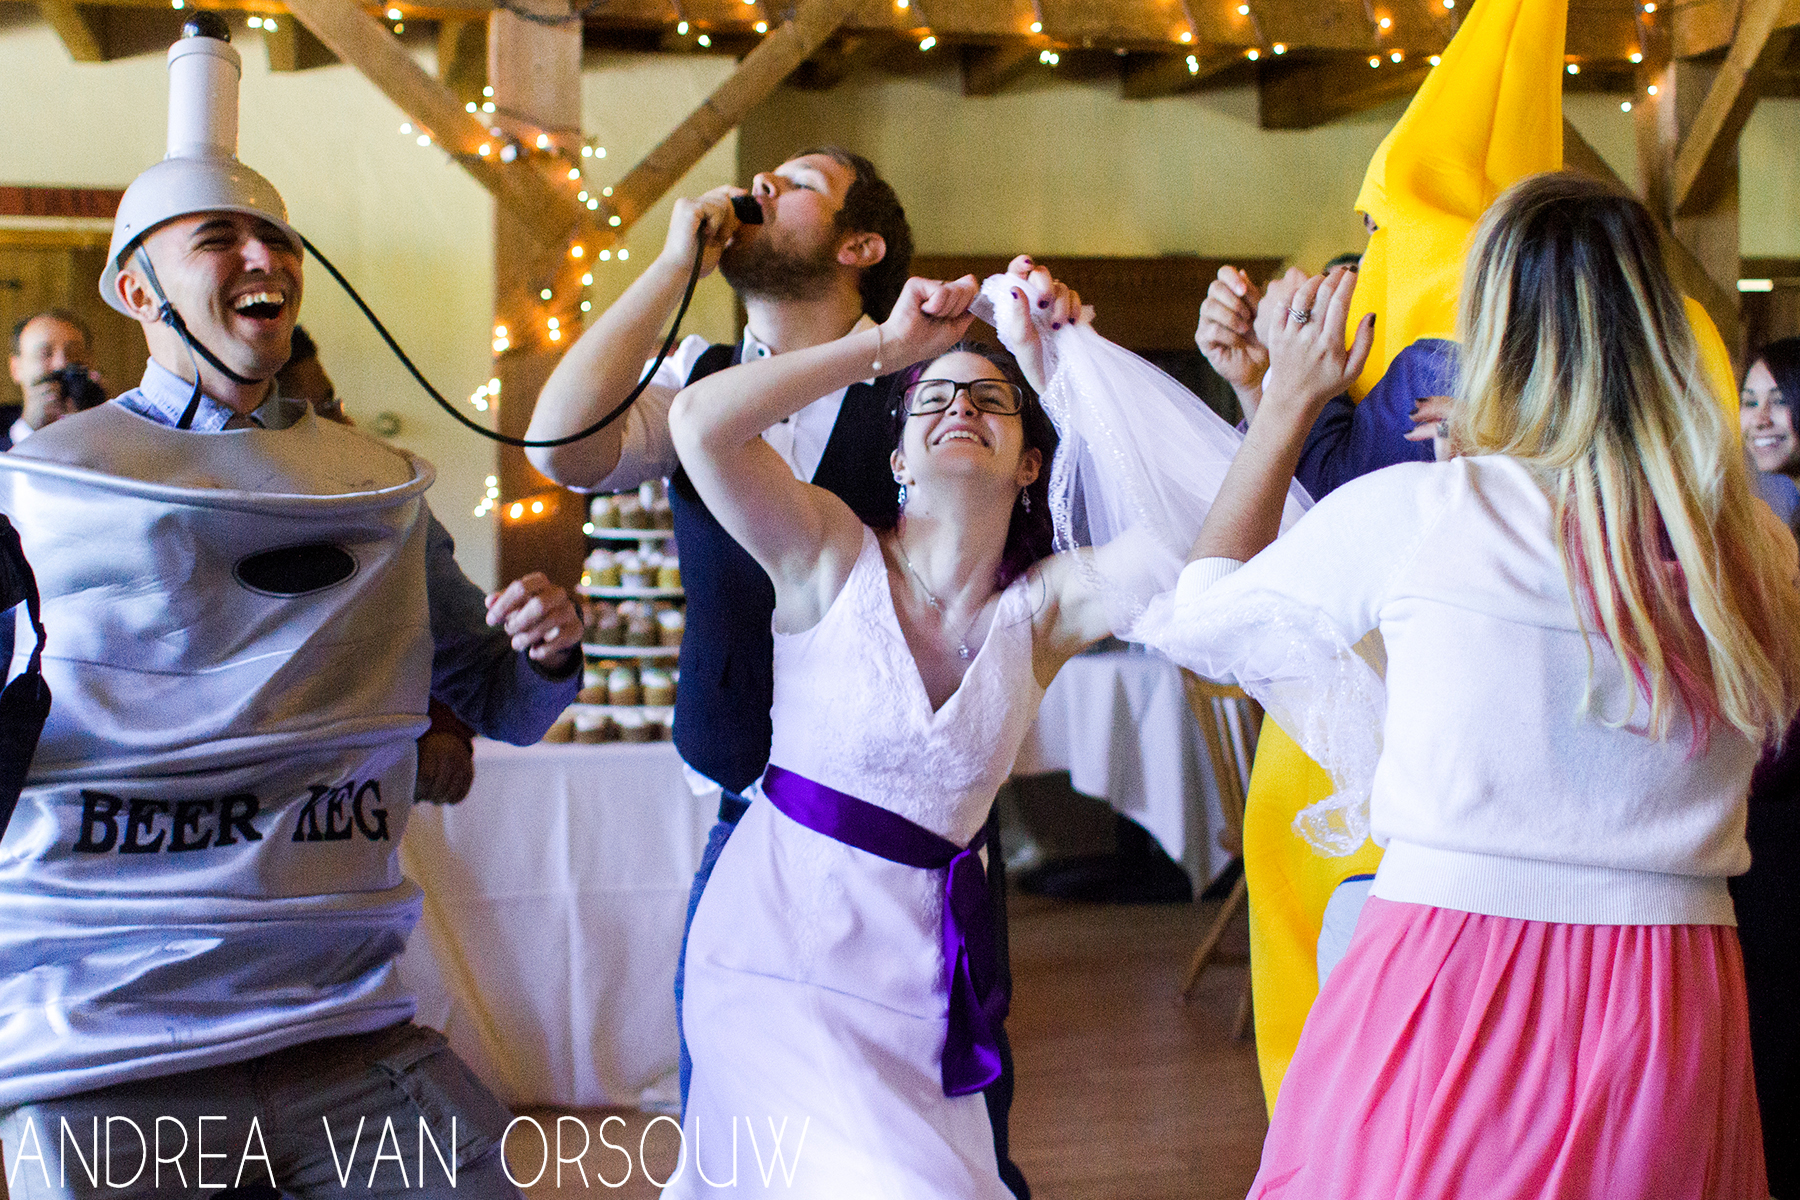 costume_dancing_wedding.jpg